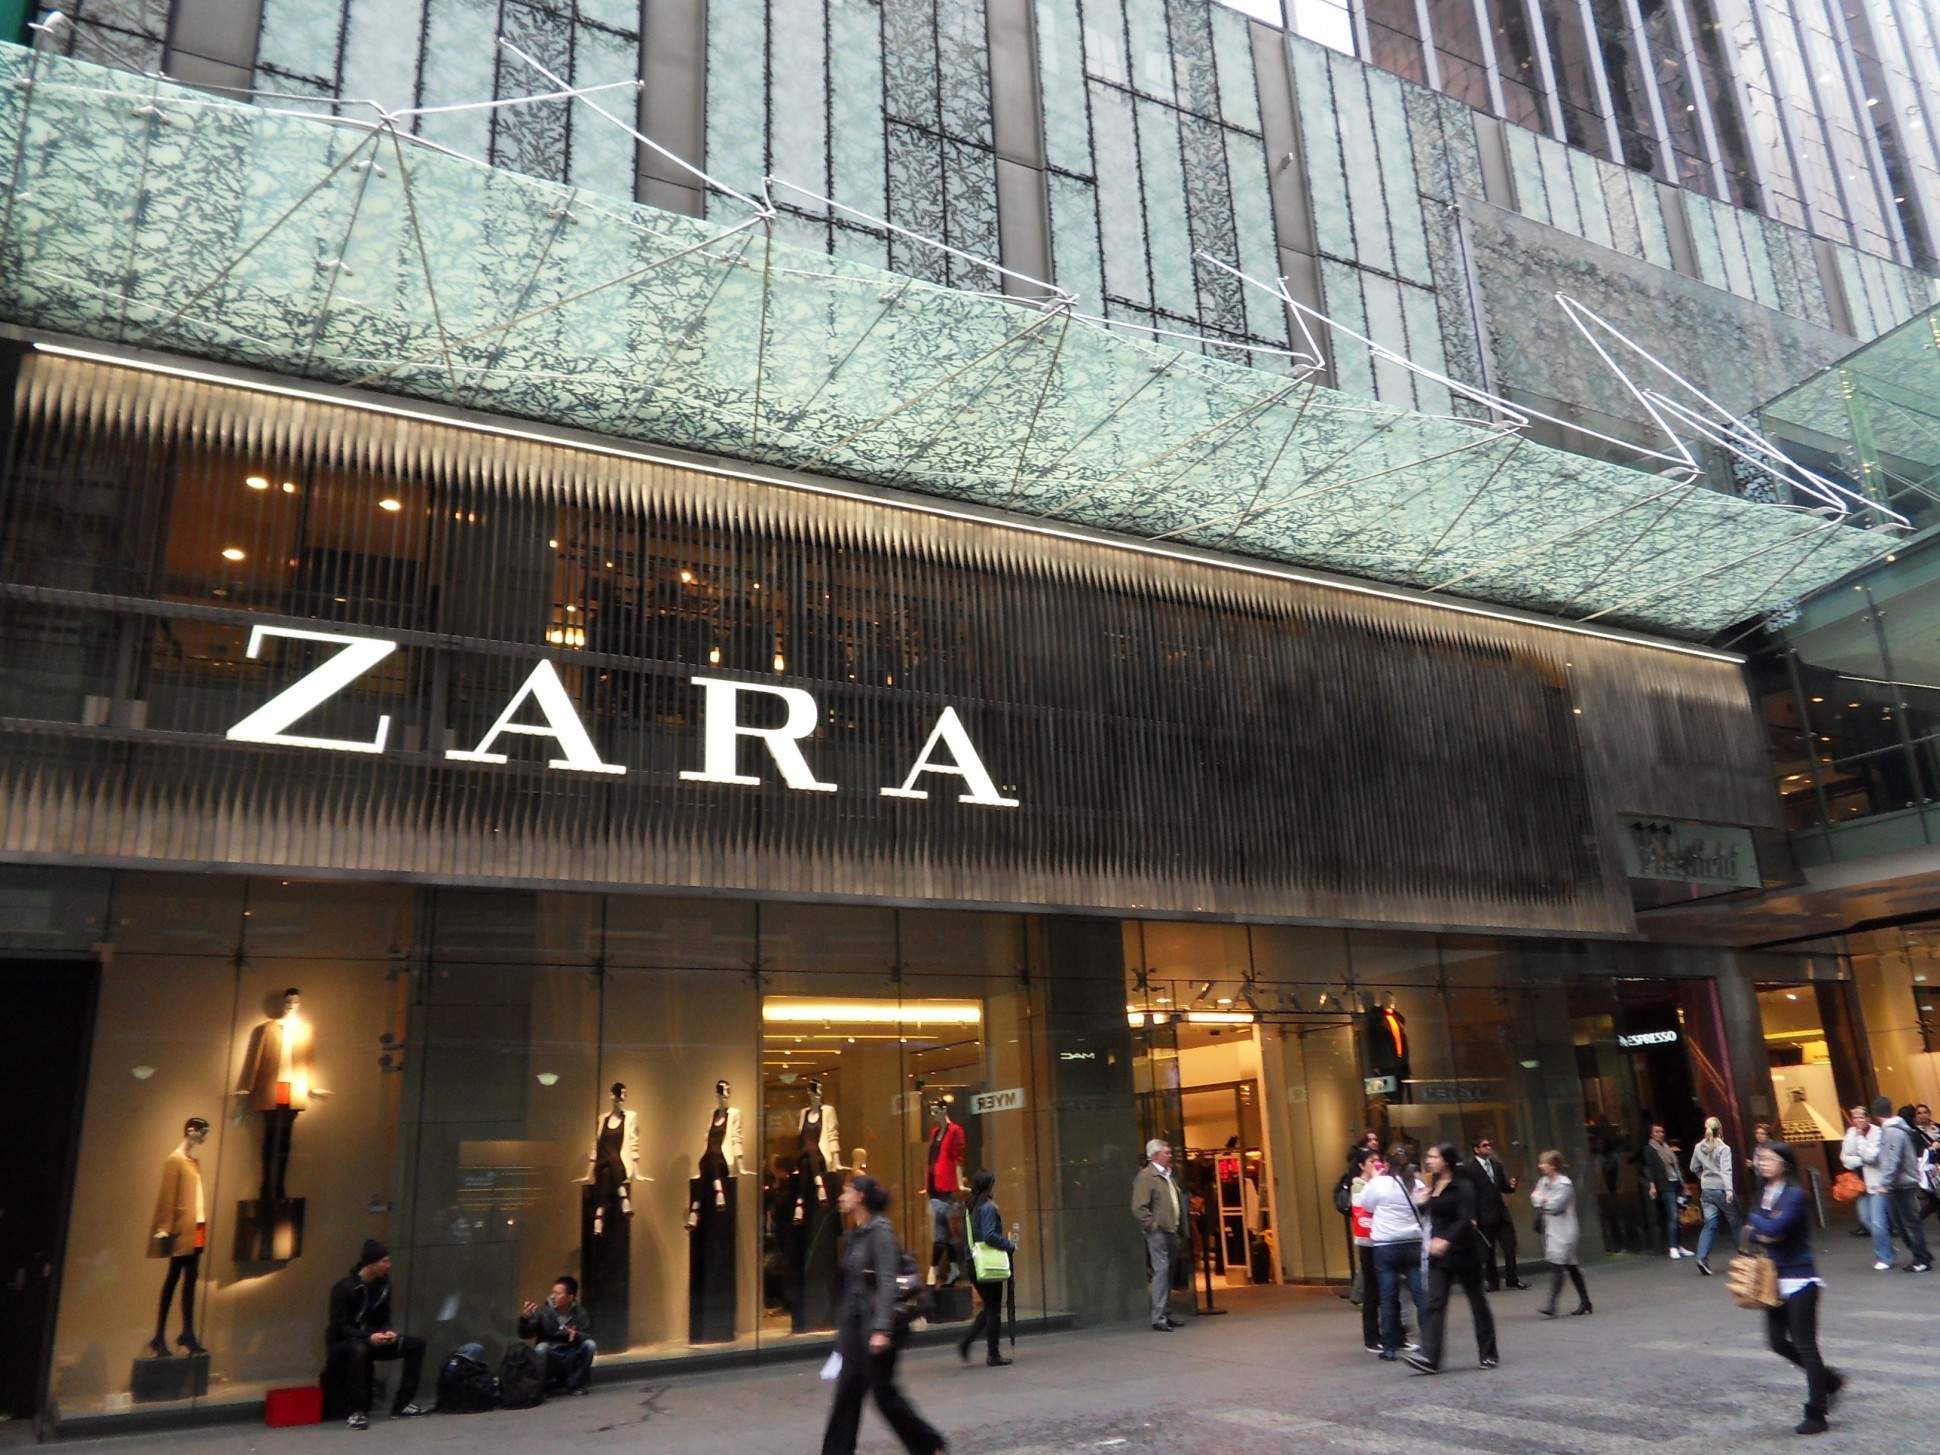 Zara operates more than 2,000 stores worldwide.